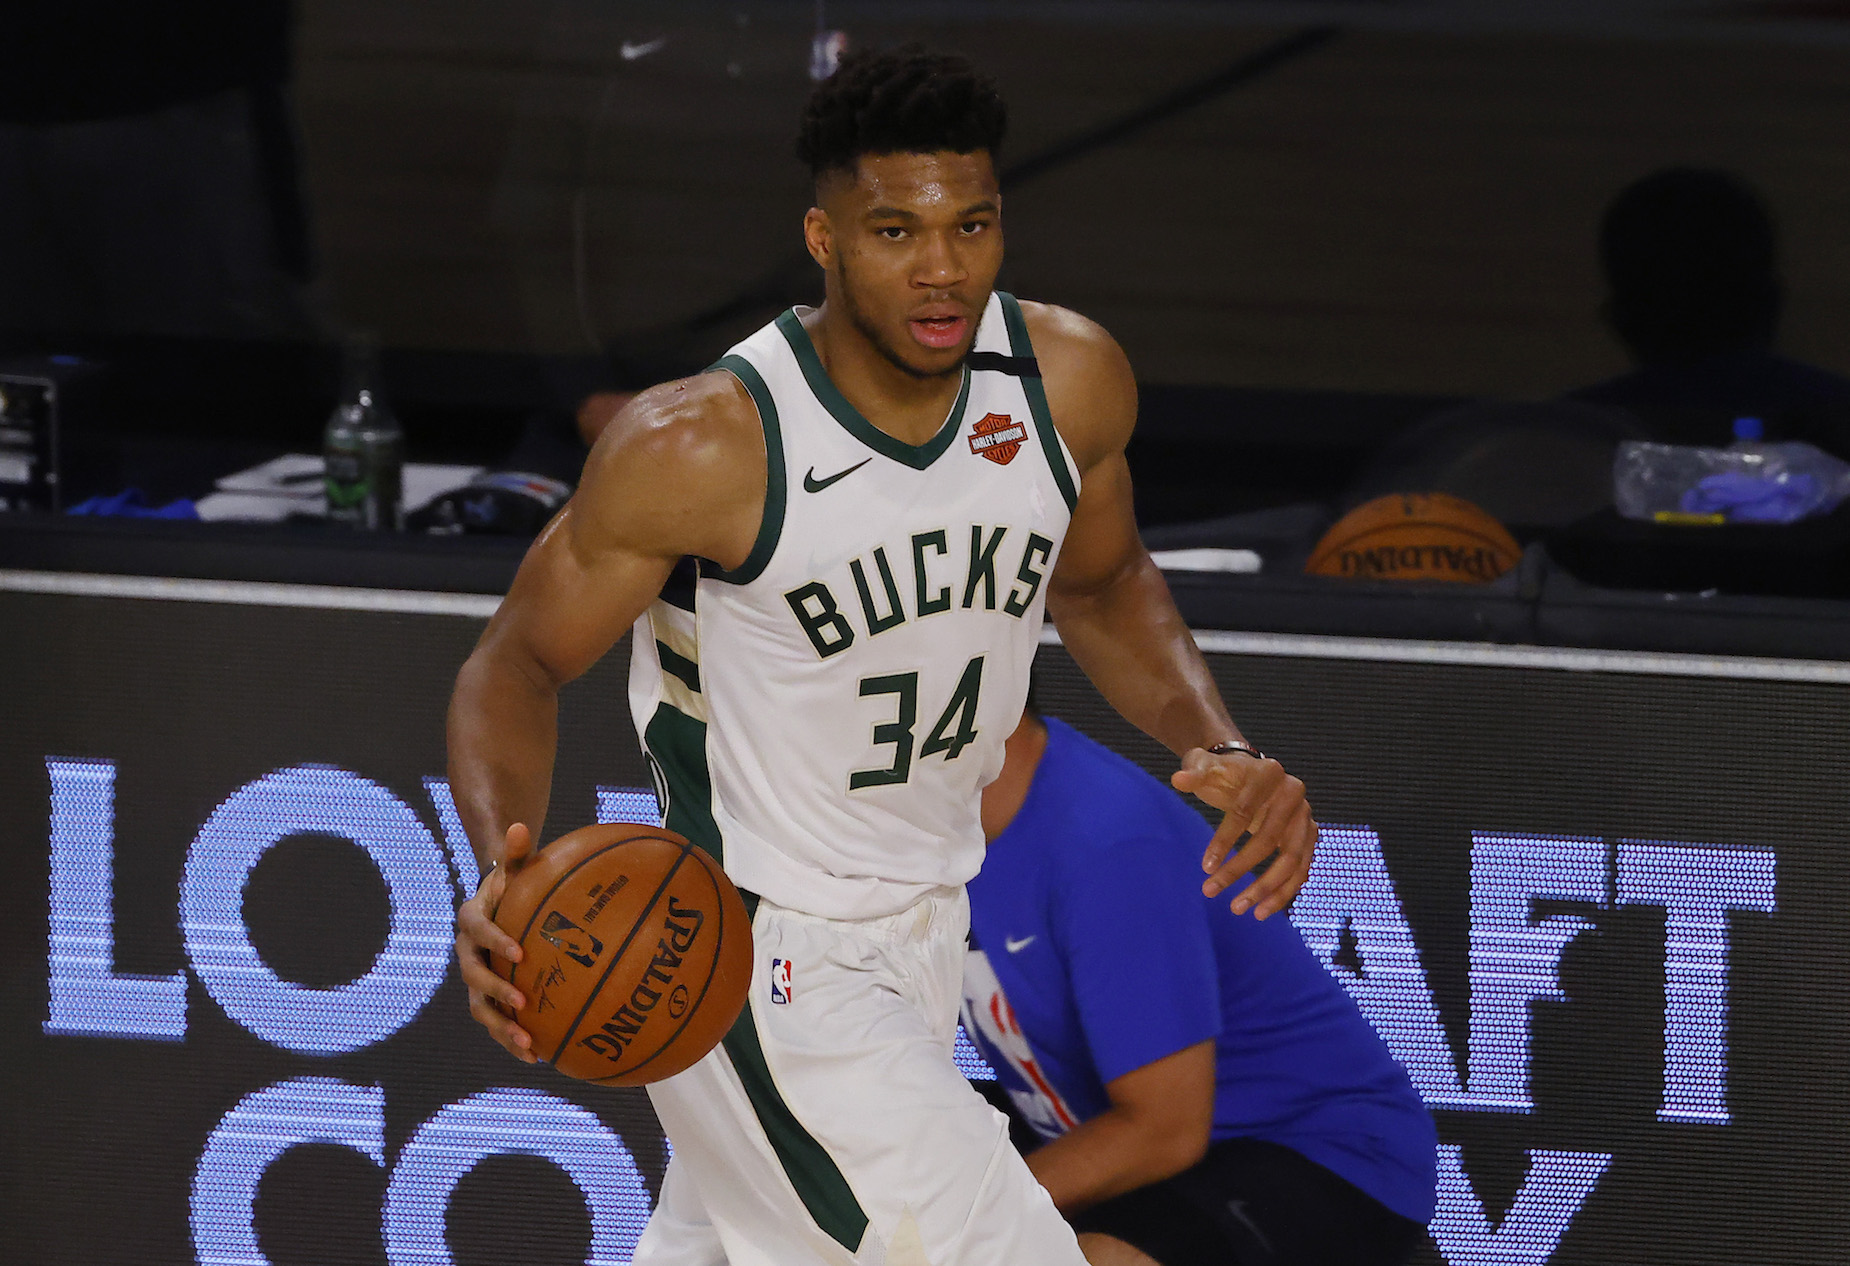 Giannis Antetokounmpo's contract is expiring next year, putting the Milwaukee Bucks in a risk-reward situation.